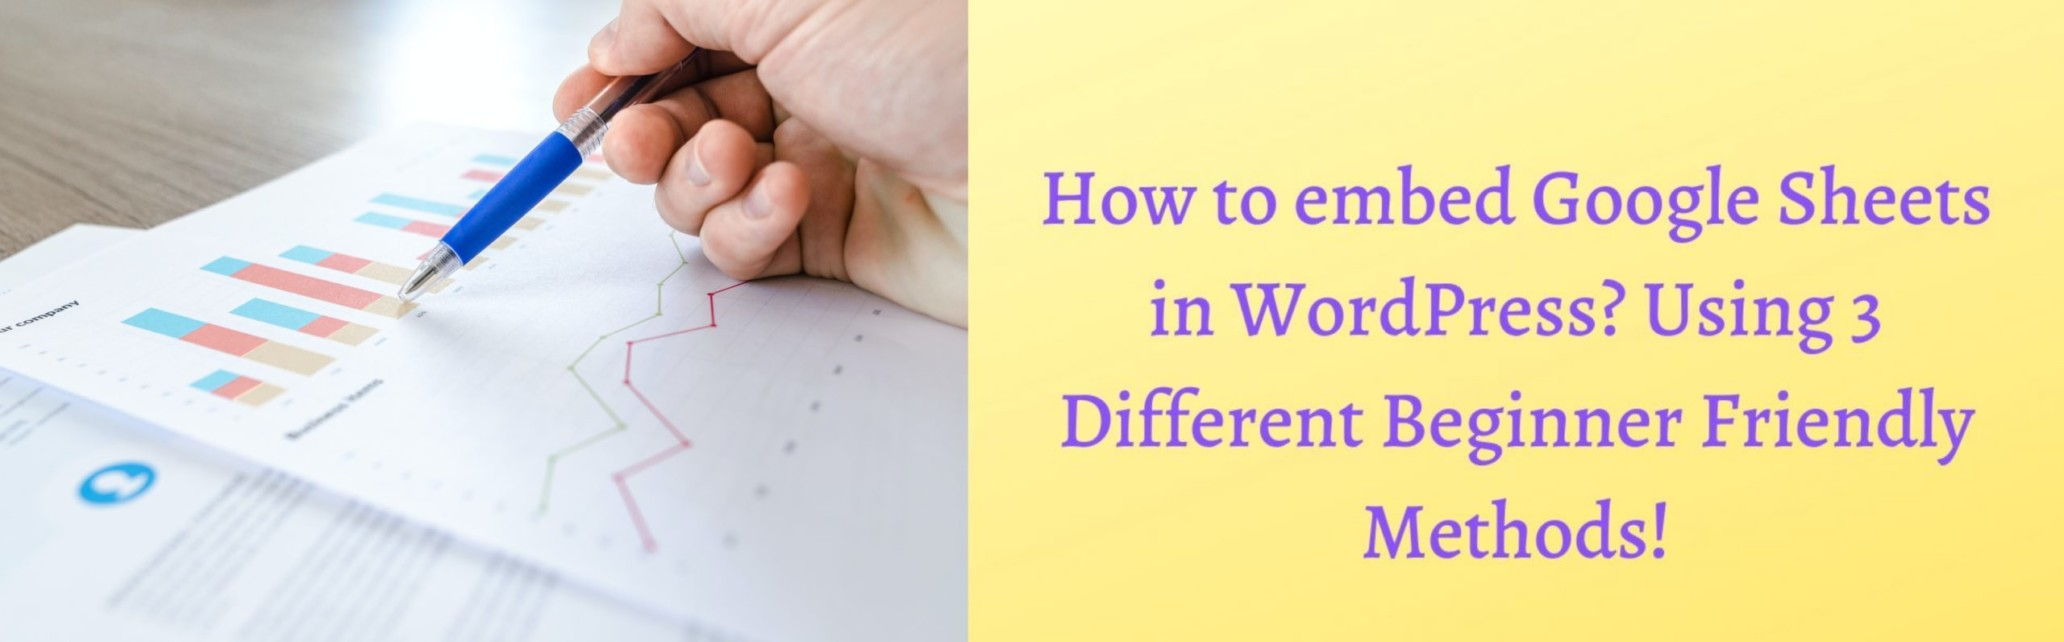 embed google sheets in wordpress - Featured image